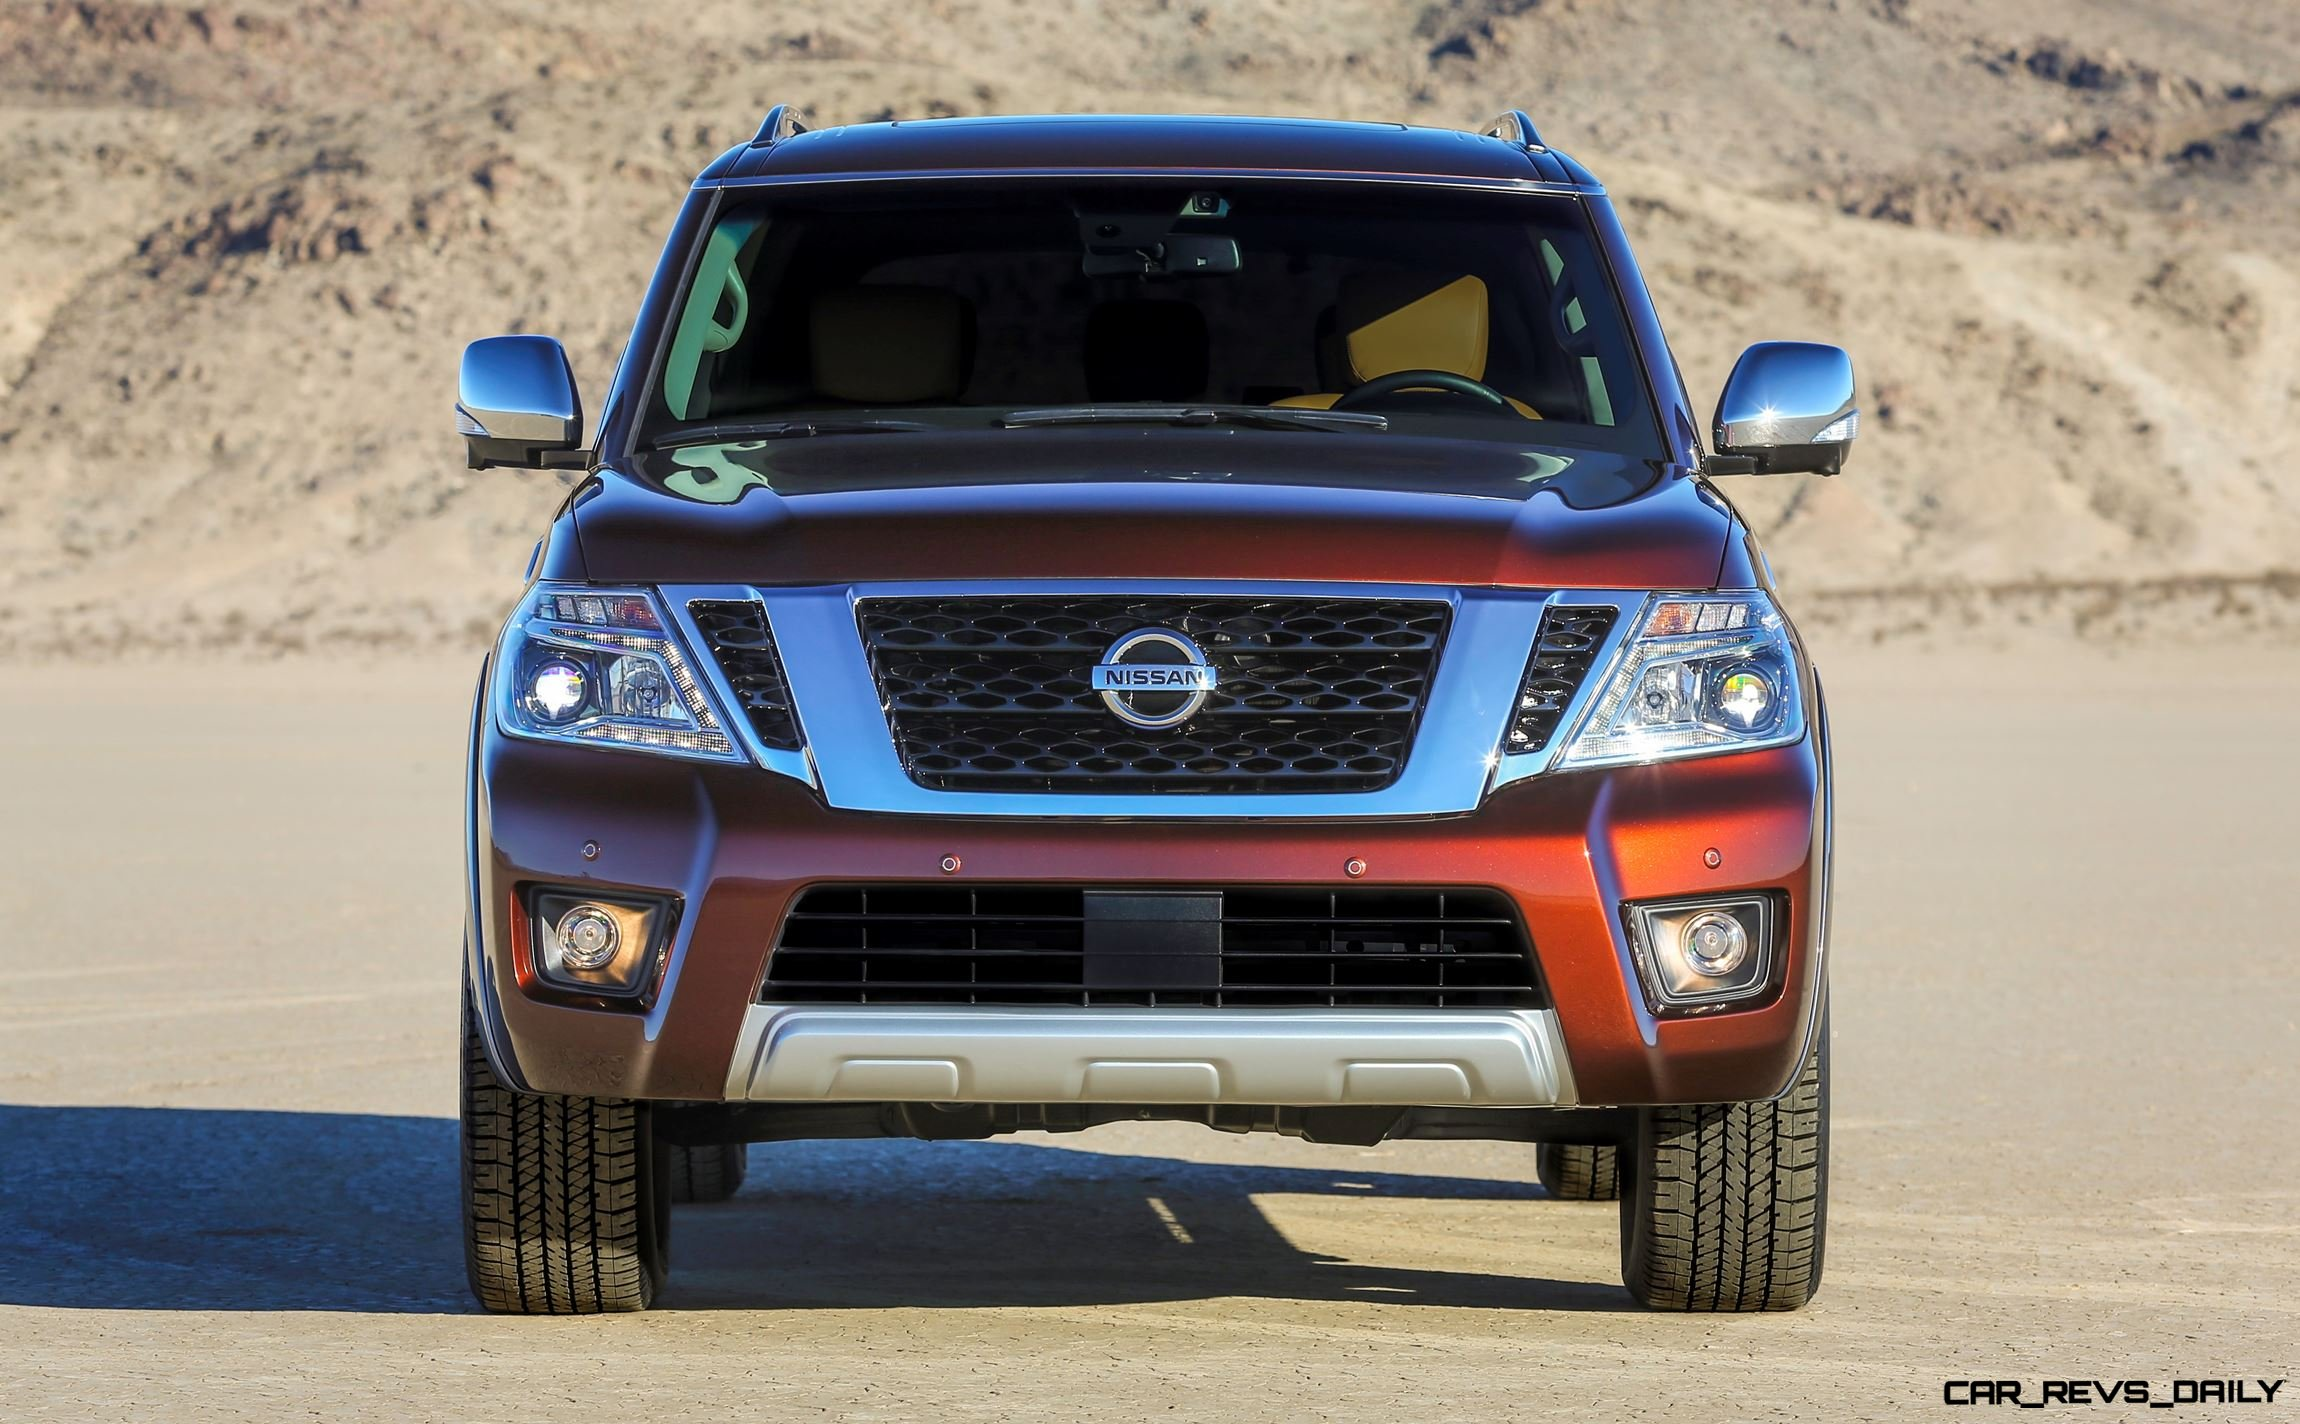 s news makes radka specs blog armada nissan photos car